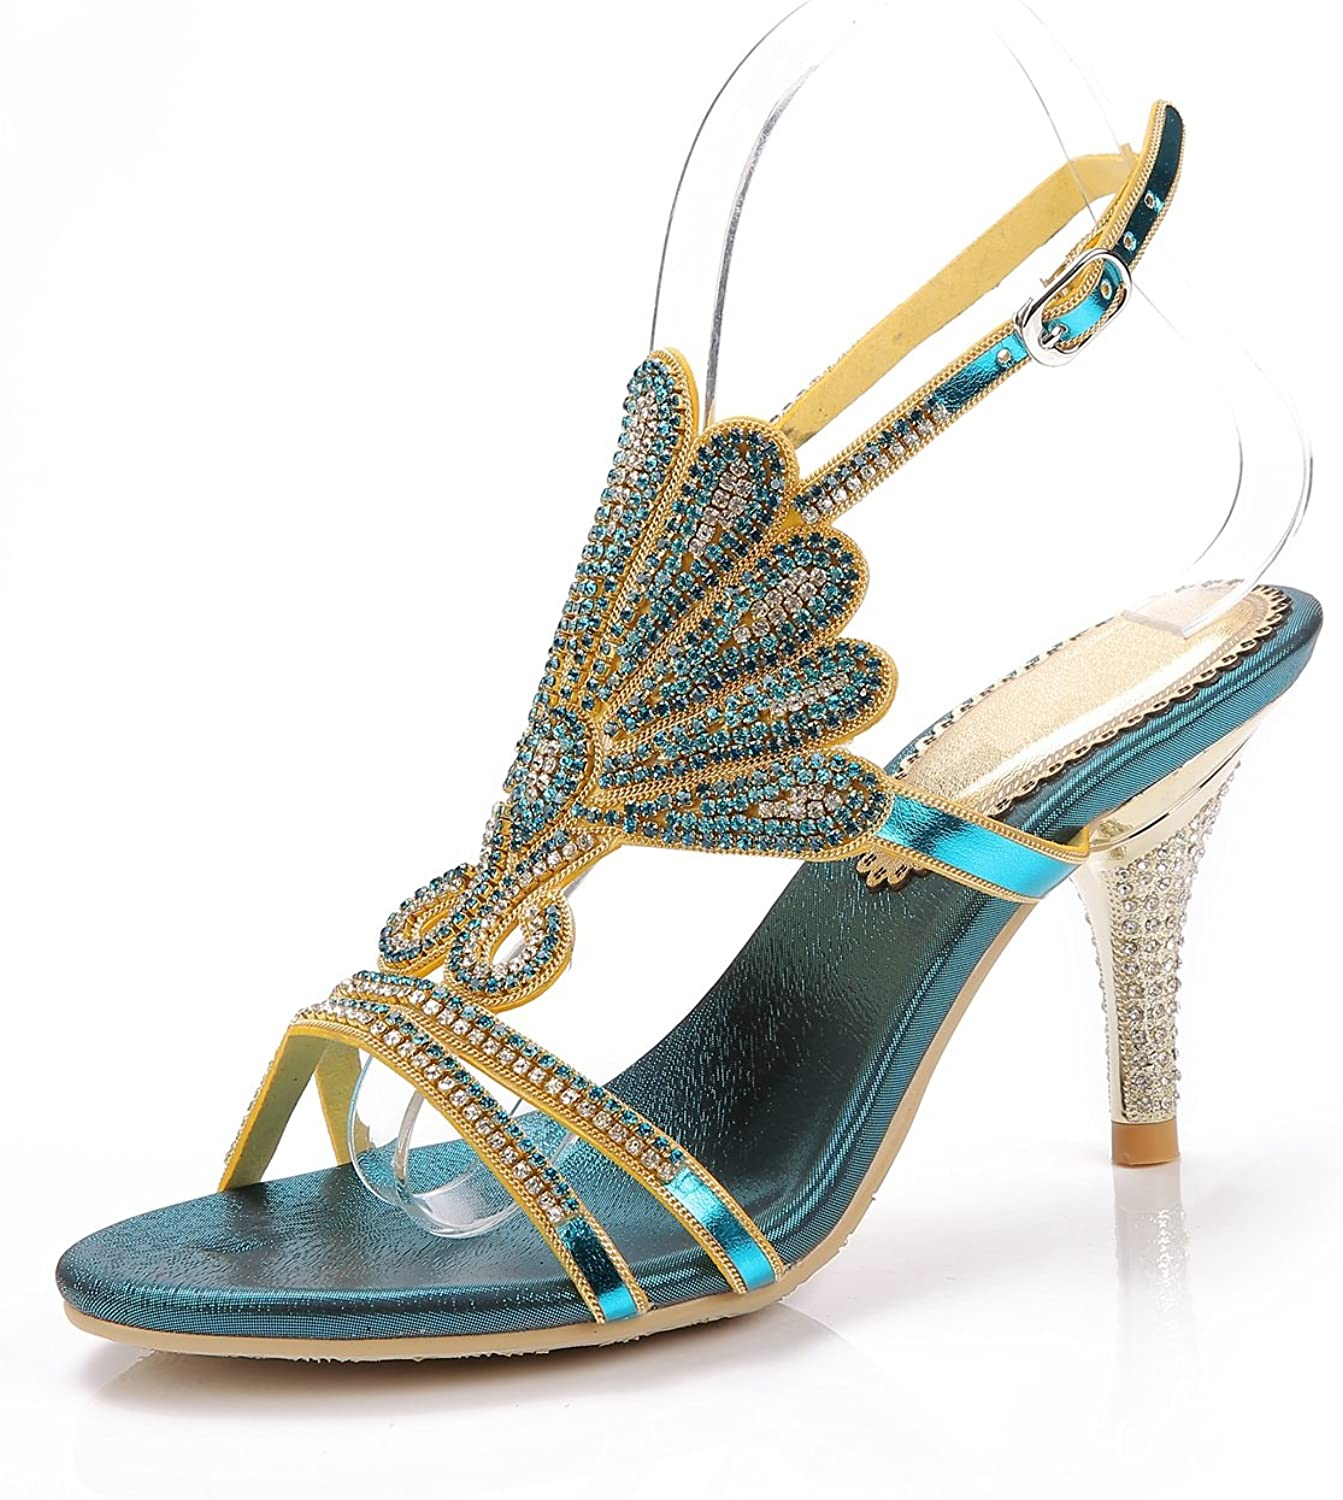 Women's shoes Glitter Leather Summer Club shoes Sexy Sandals Heels Rhinestone for Party & Evening Dress gold